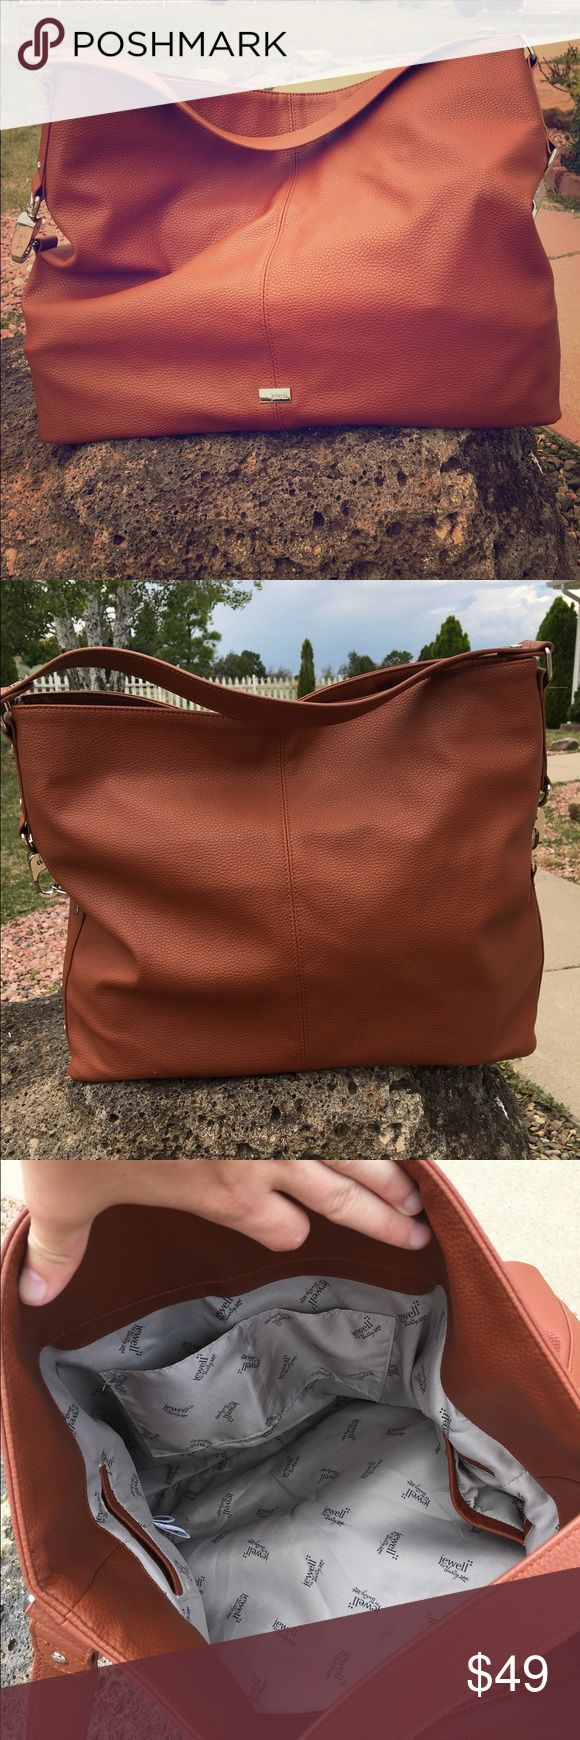 Cognac Jewell 'Fashion Games' Hobo Bag (NWOT) Brand new faux leather hobo bag with lots of space and interior pockets. Large enough for a laptop and can also be used as a super trendy weekender bag. Jewell by My Thirty-One Bags Hobos